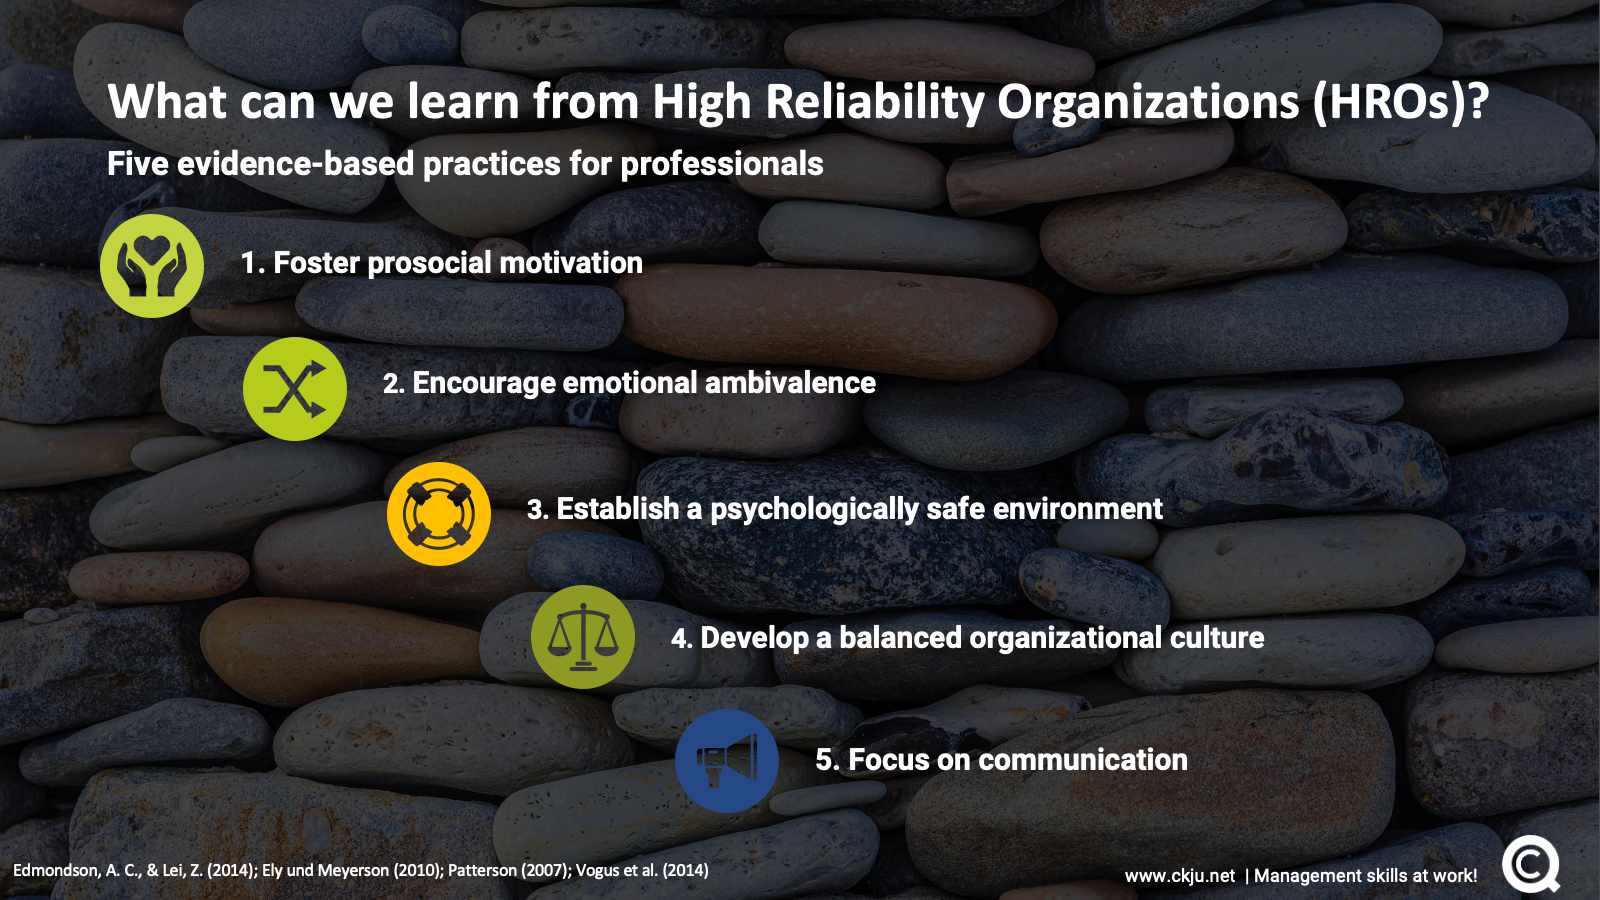 What can we learn from high reliability organizations?